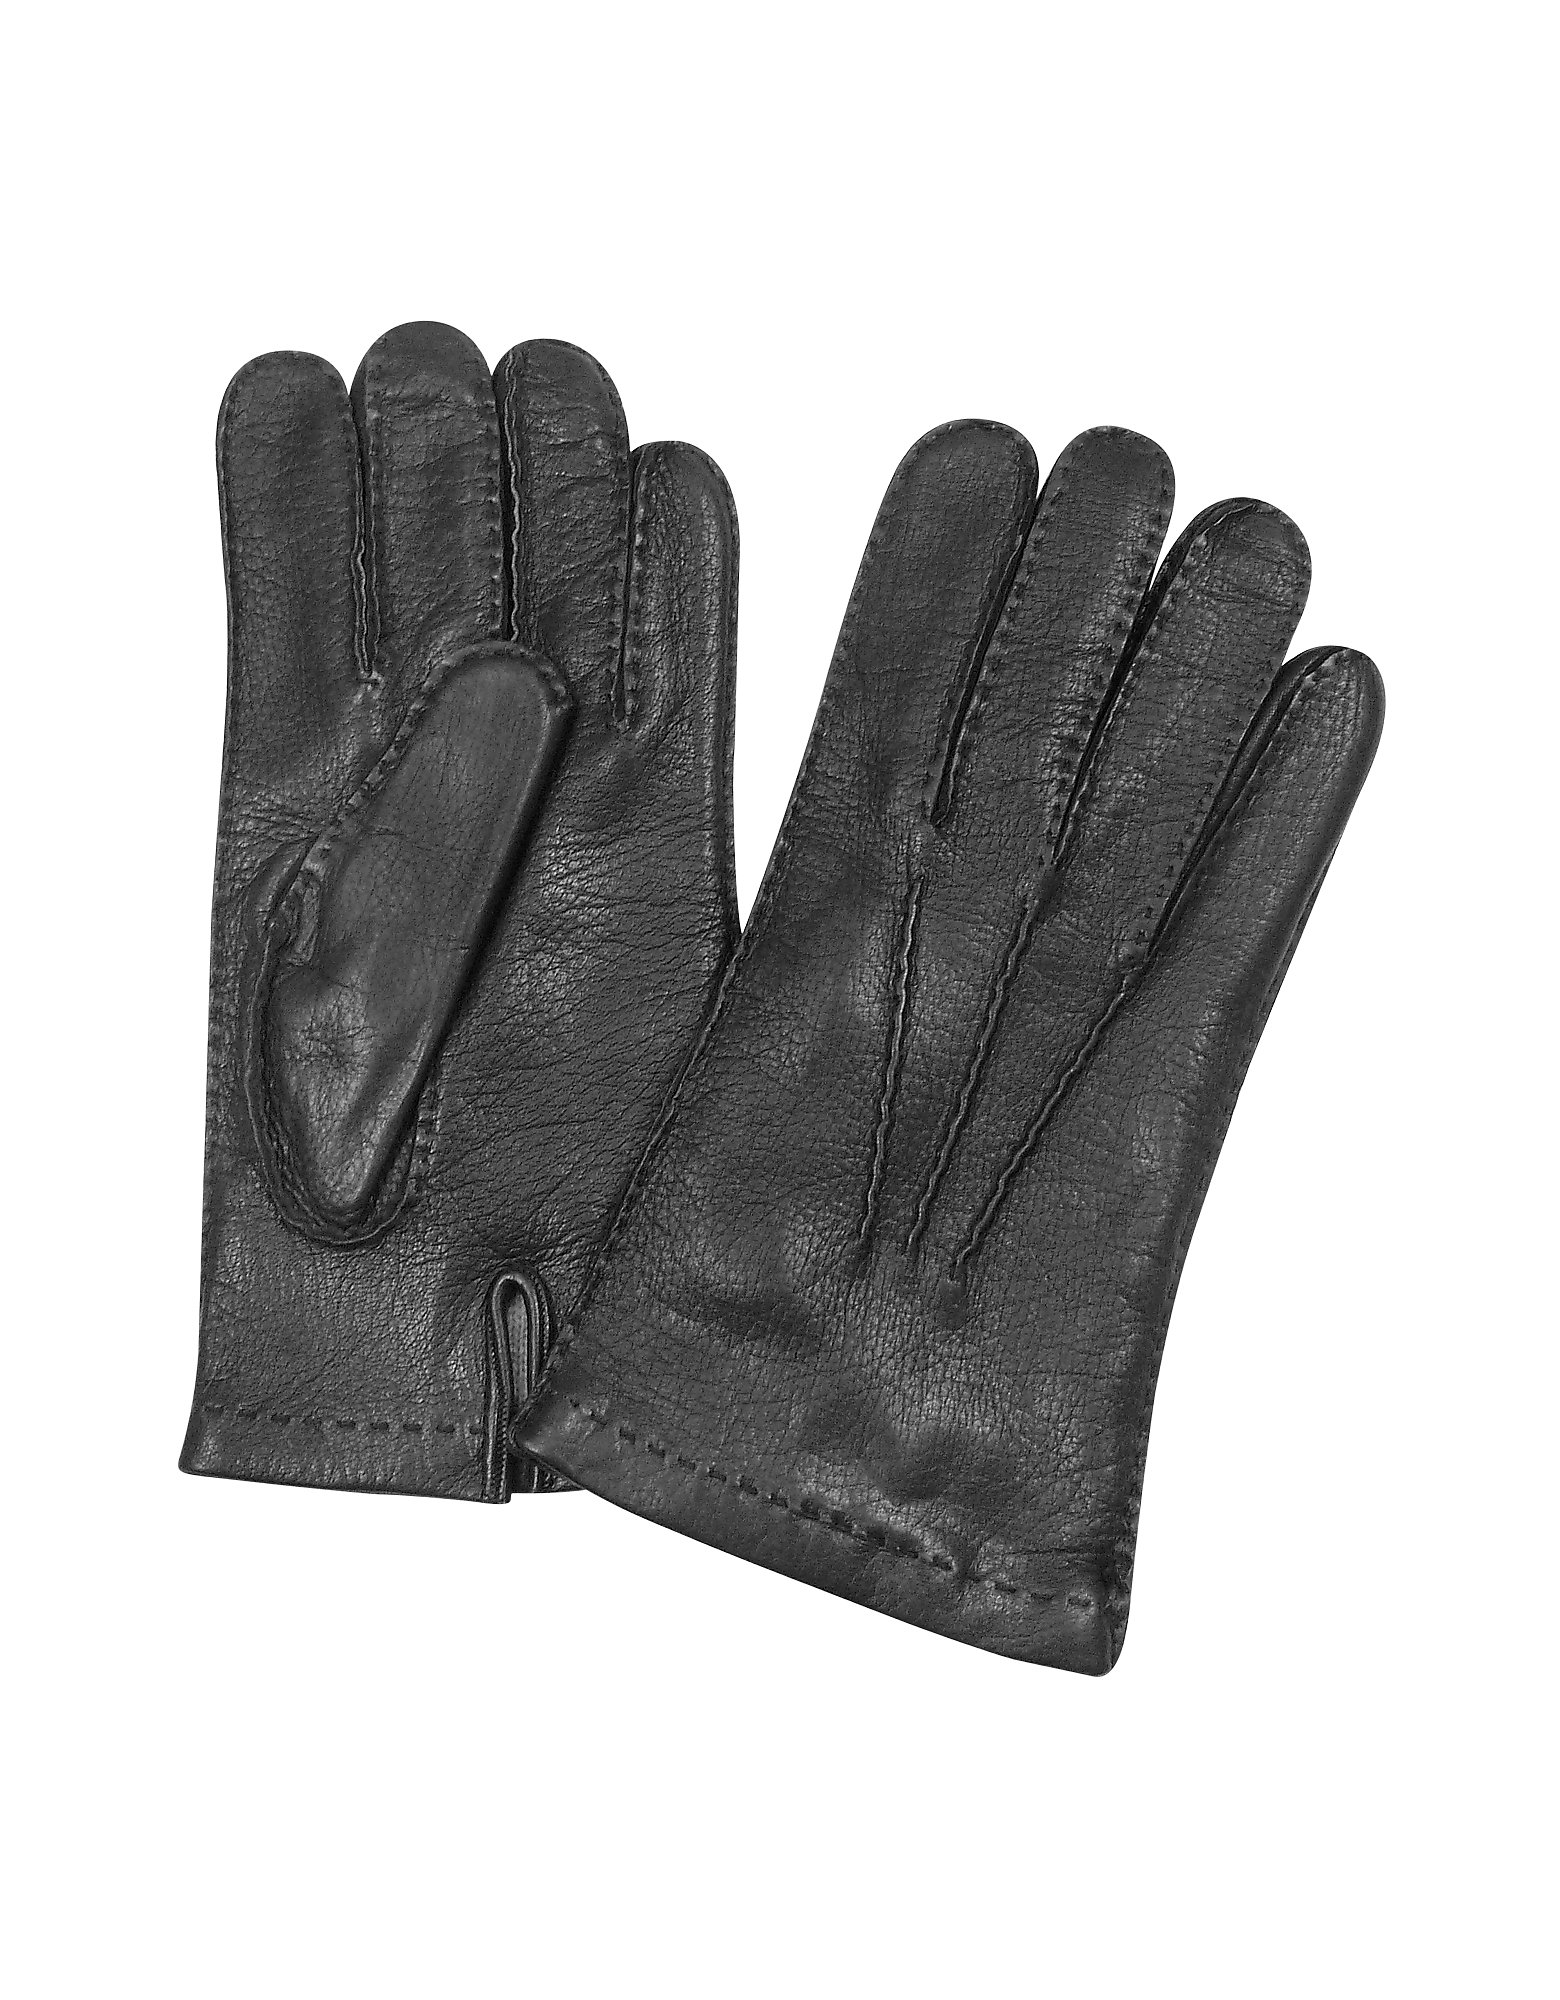 Forzieri Men's Gloves, Men's Cashmere Lined Black Italian Deer Leather Gloves